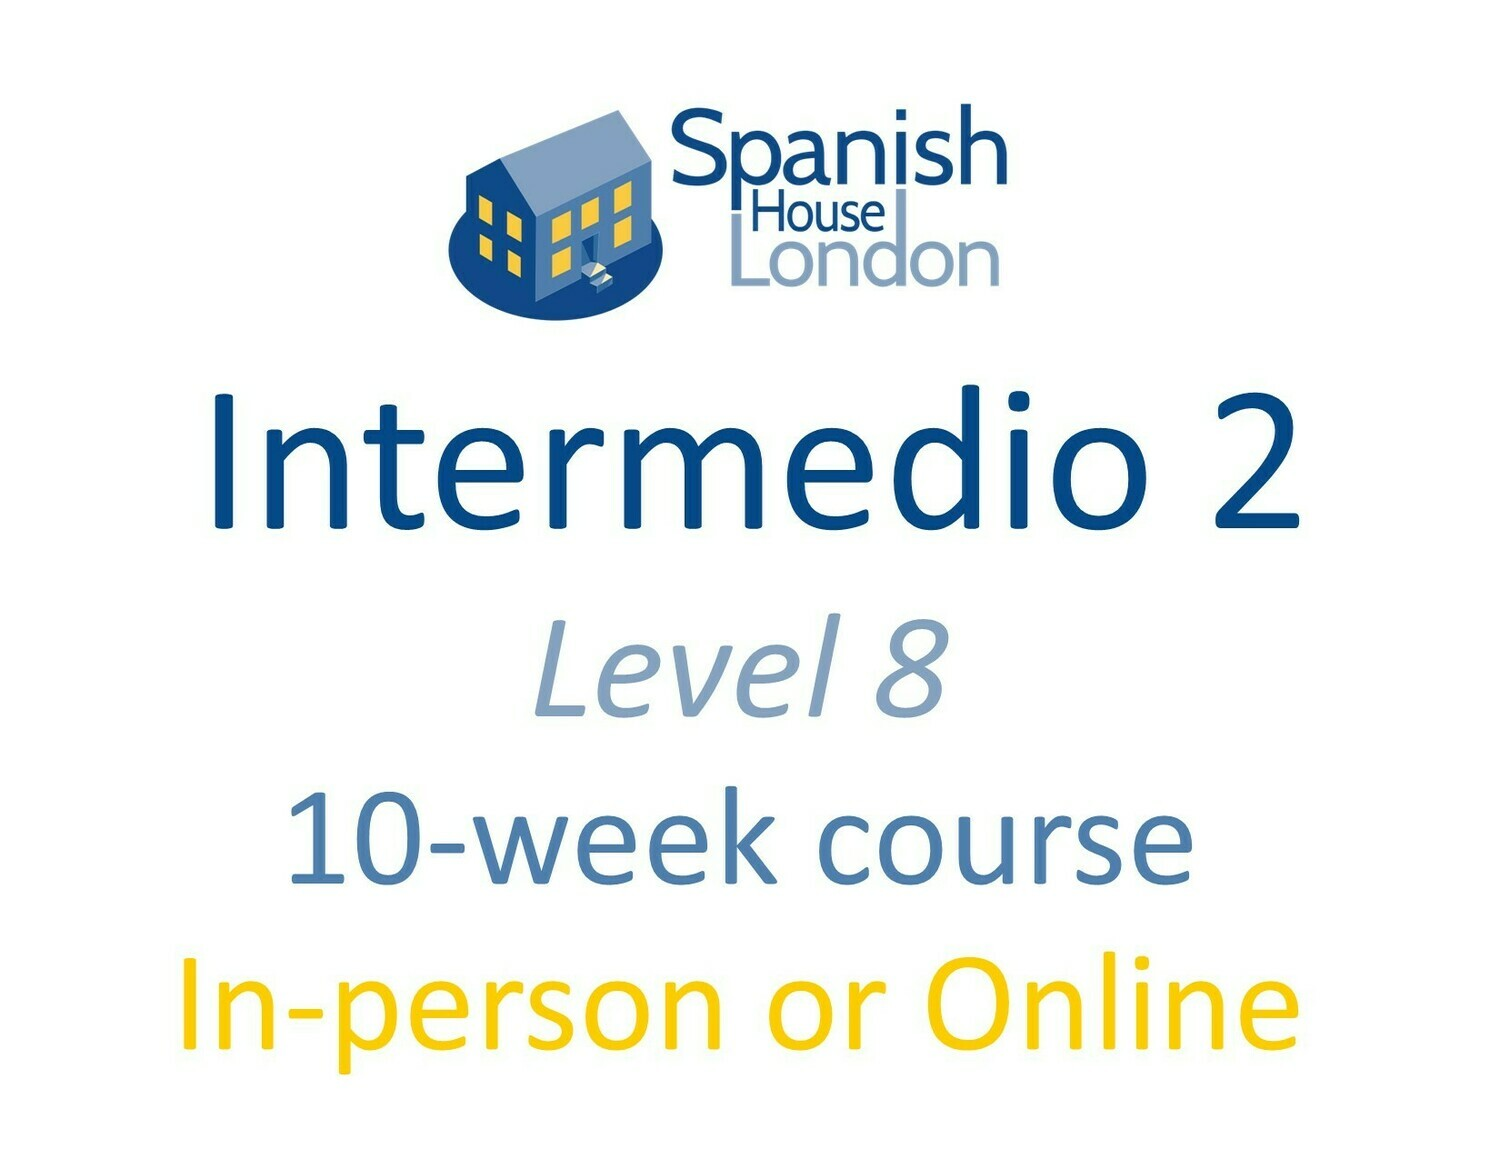 Intermedio 2 Course starting on 28th June at 6pm in Clapham North